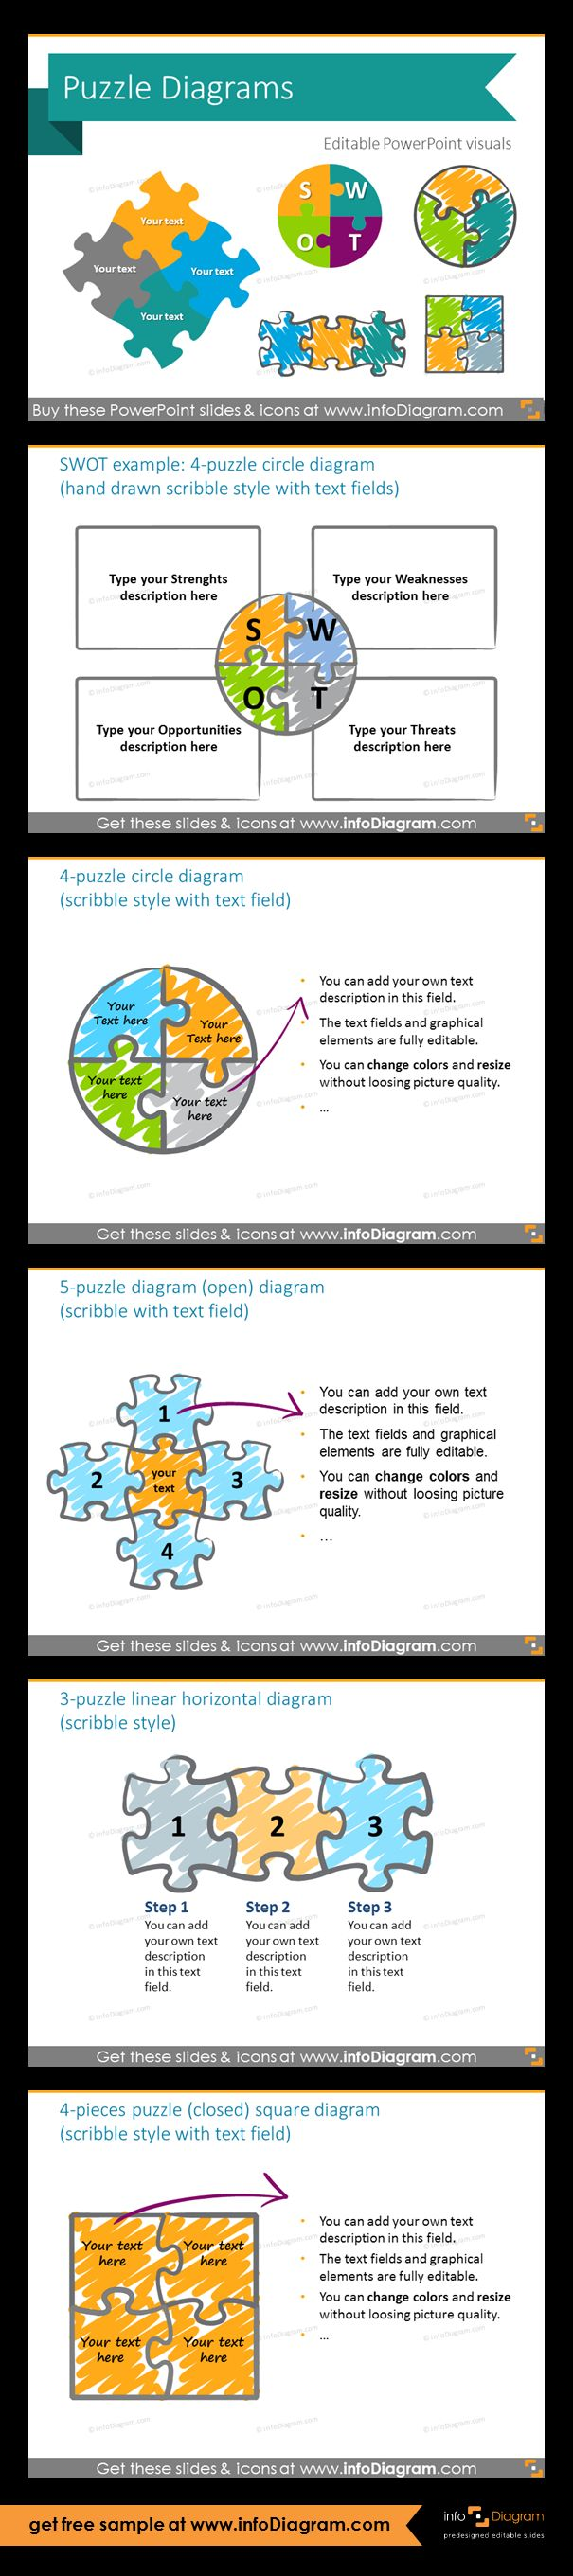 Jigsaw Puzzle collection for integrity diagrams - set of editable graphical elements for PowerPoint. Fully adaptable vector shapes. SWOT diagram as 4-puzzle circle diagram (in scribble style with text field); 4-pieces circle diagram example; 5-puzzle open diagram; 3-puzzle linear horizontal diagram; 4-pieces closed square chart.